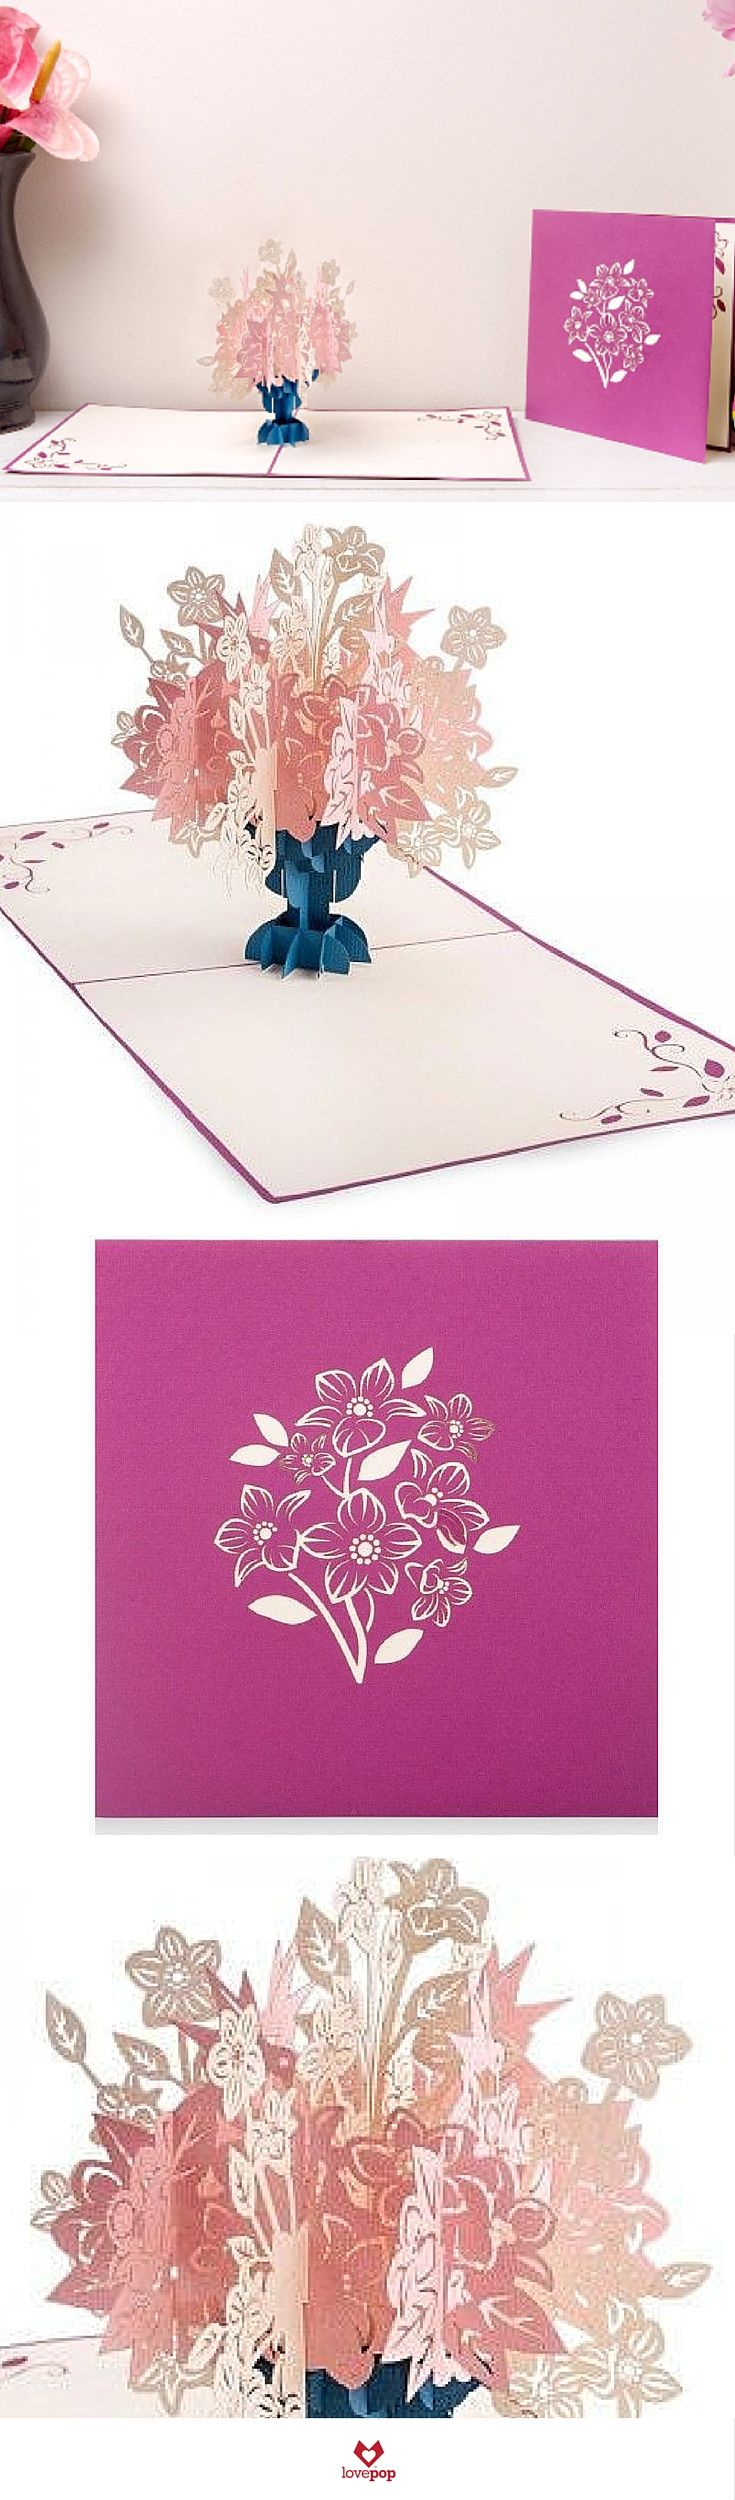 Dreaming of springtime? Share the flowers with a friend with this paper art 3d pop up card full of flowers. #blooms